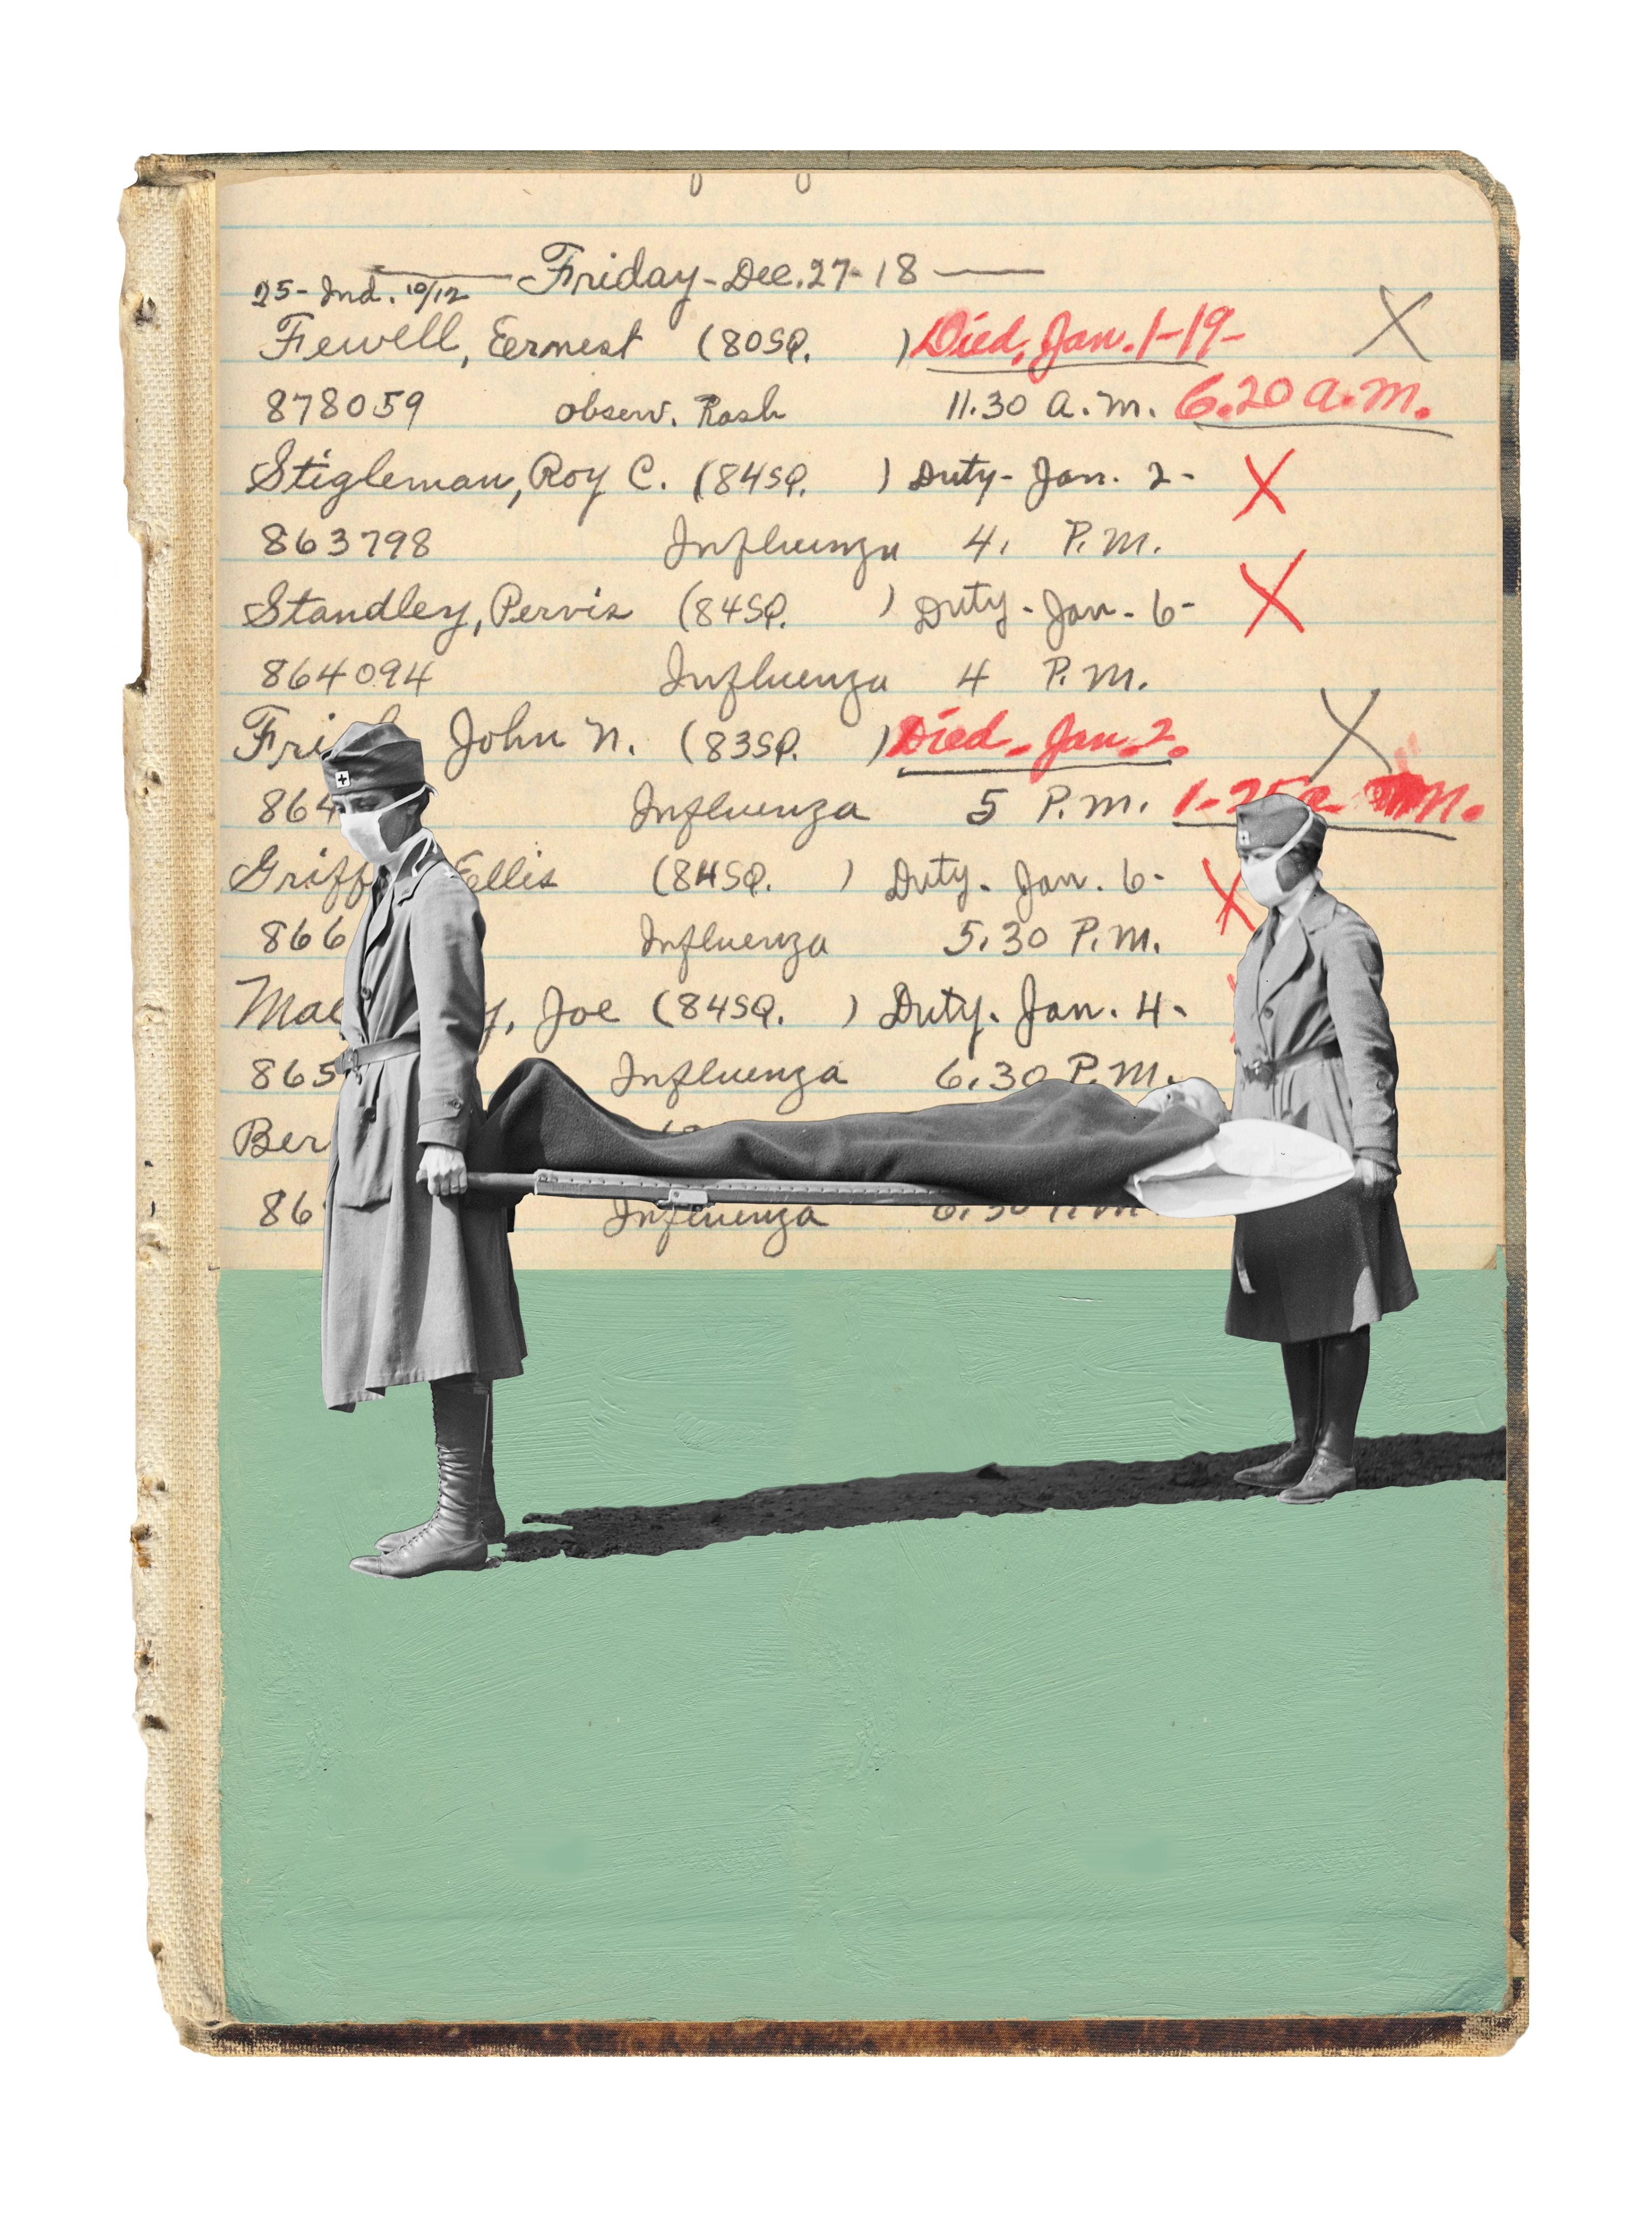 Red Cross workers carried a stretcher in 1918; names fill an Army hospital ledger.